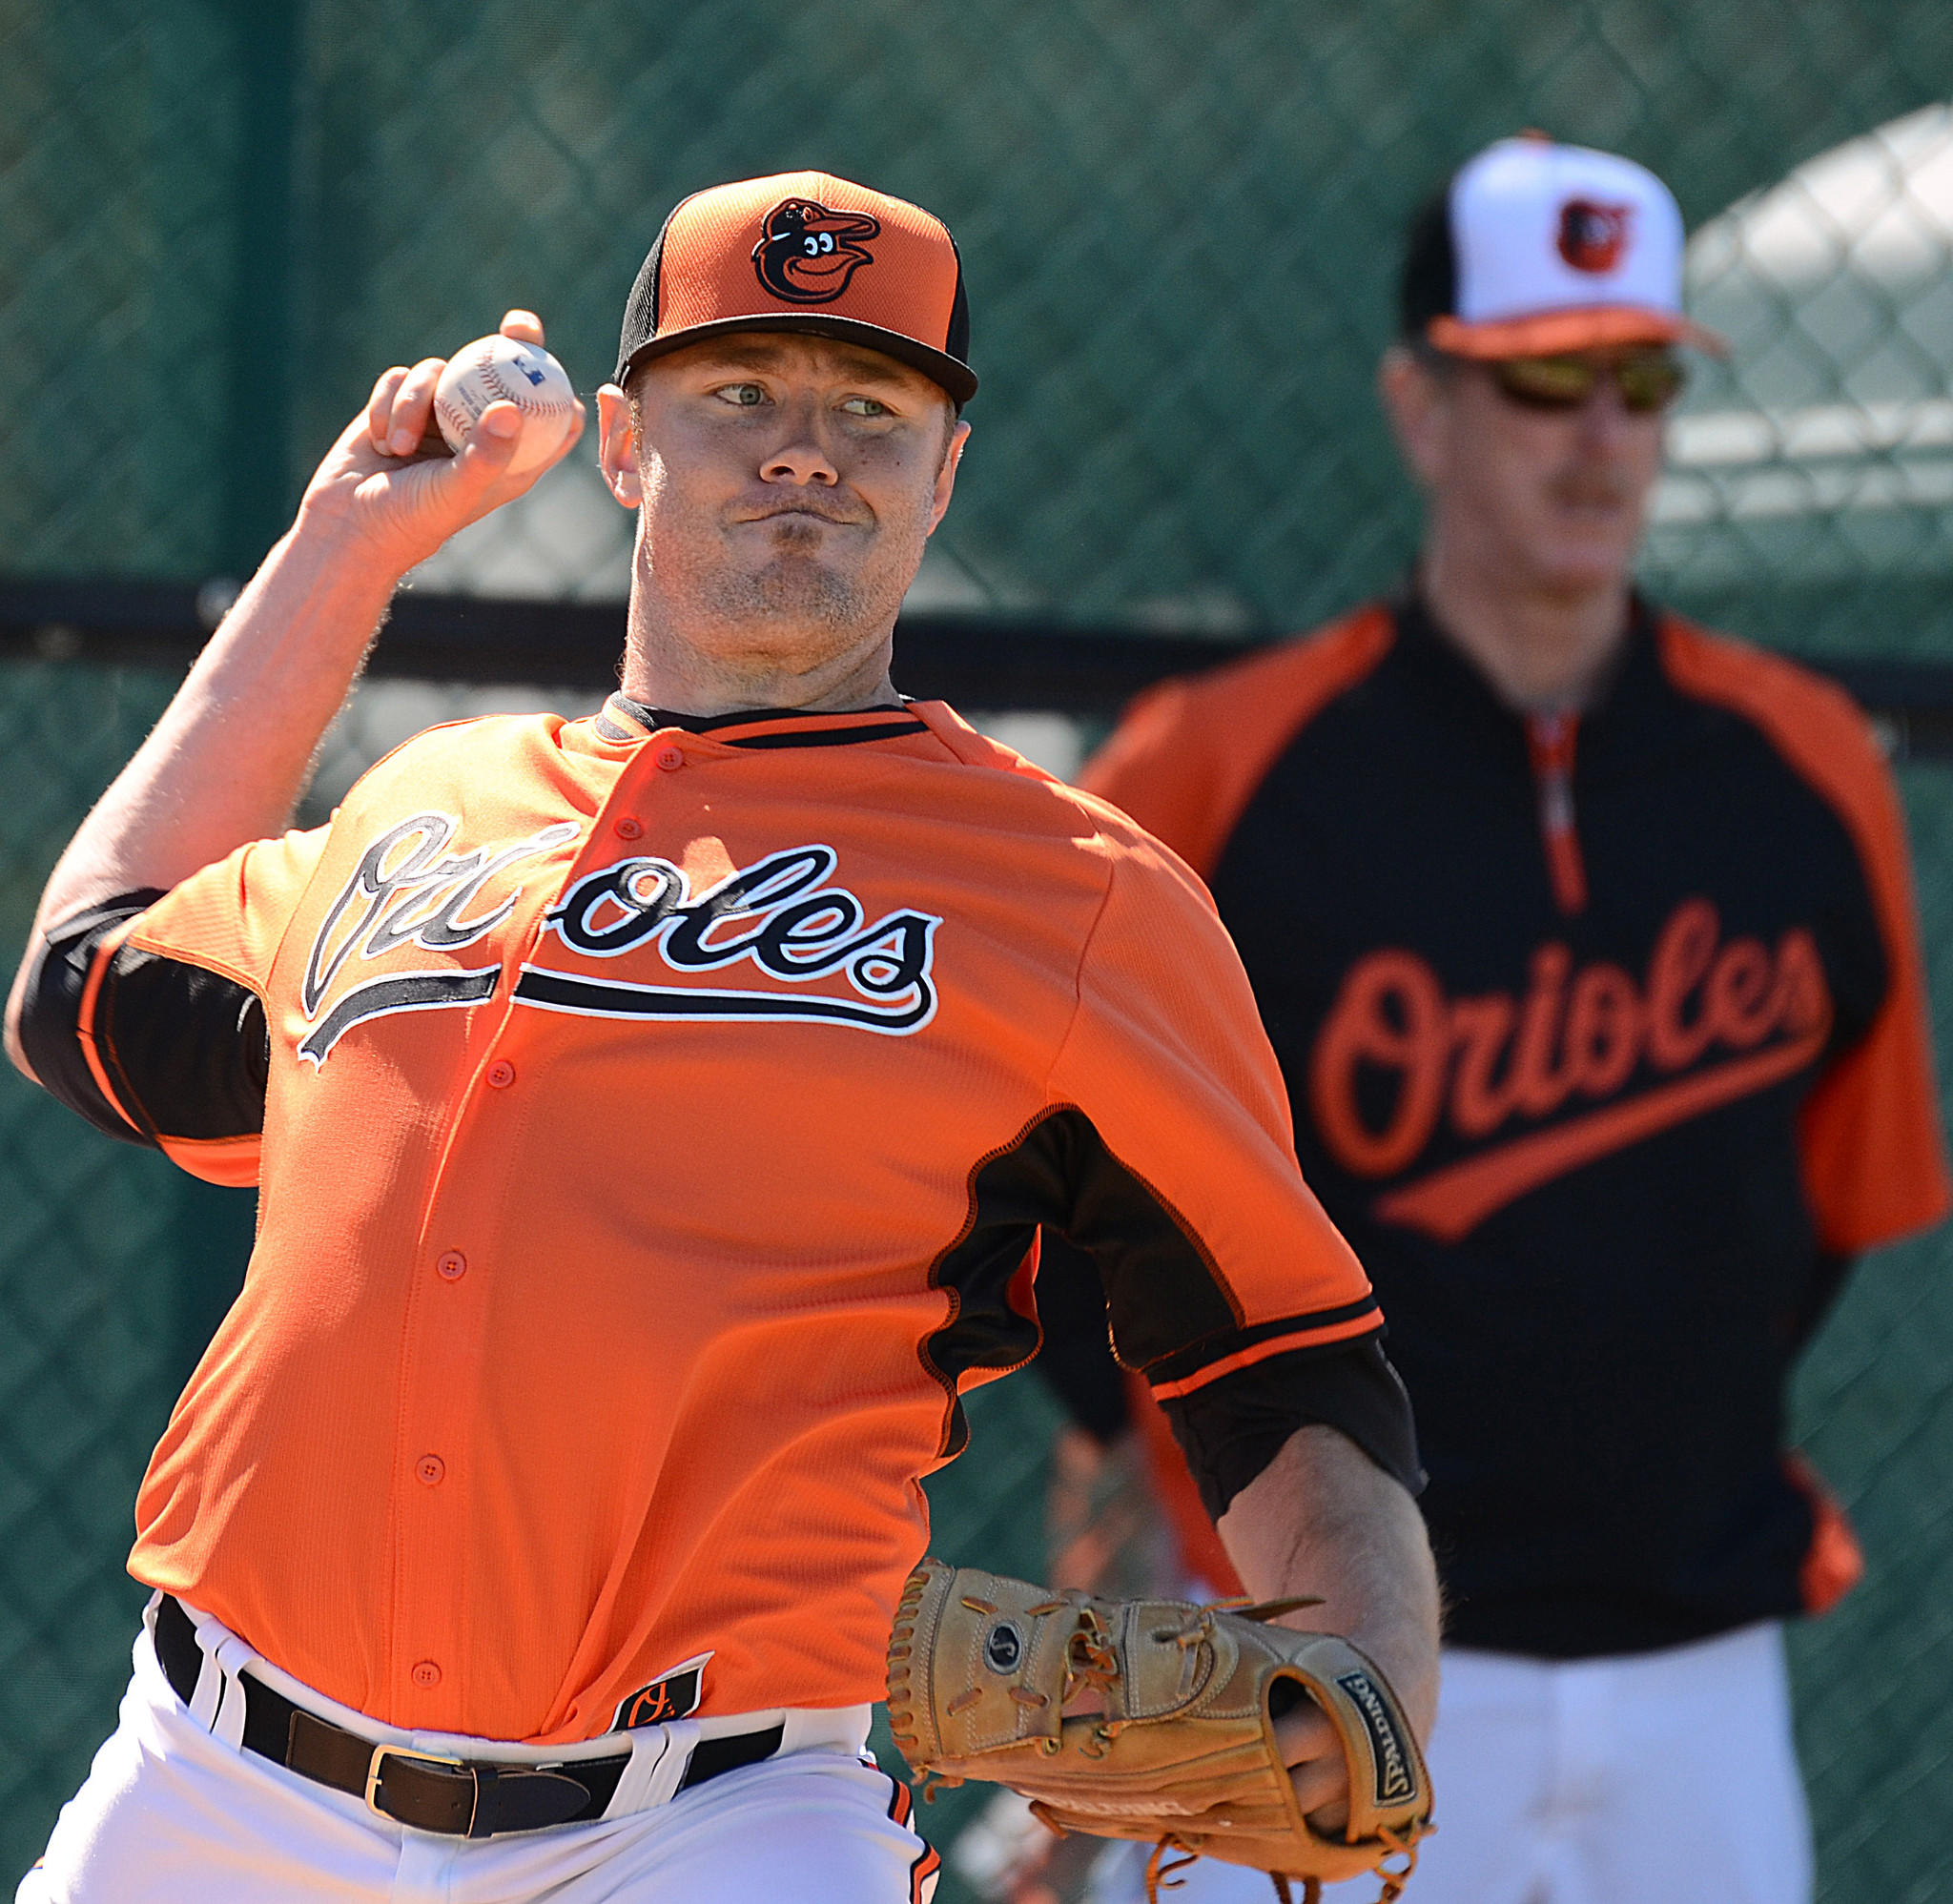 Chris Tillman could be stretched out to four innings in his start Monday against the Pirates.